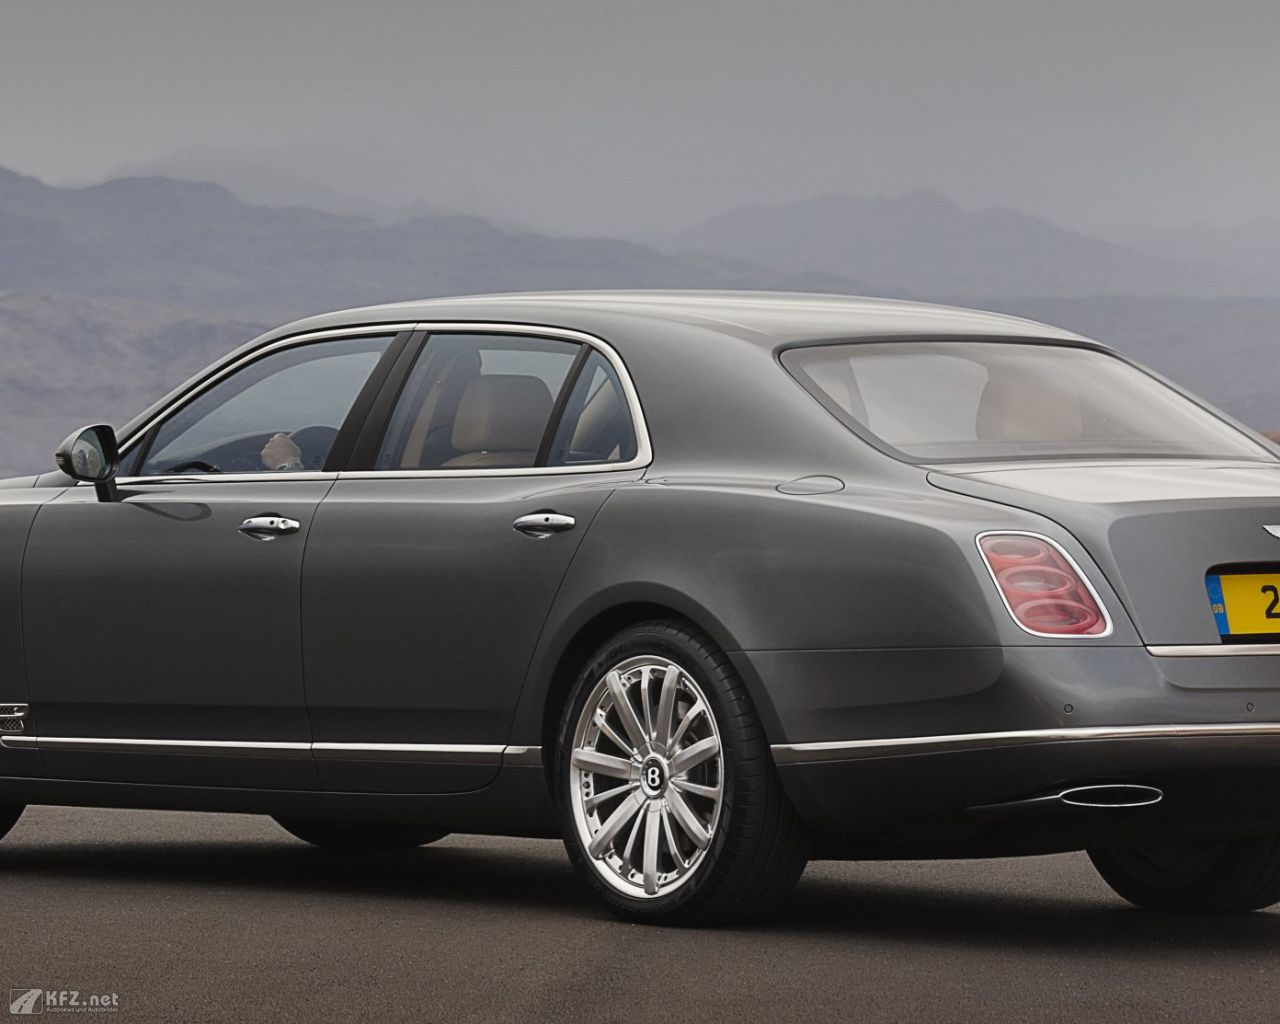 bentley-mulsanne-1280x1024-19